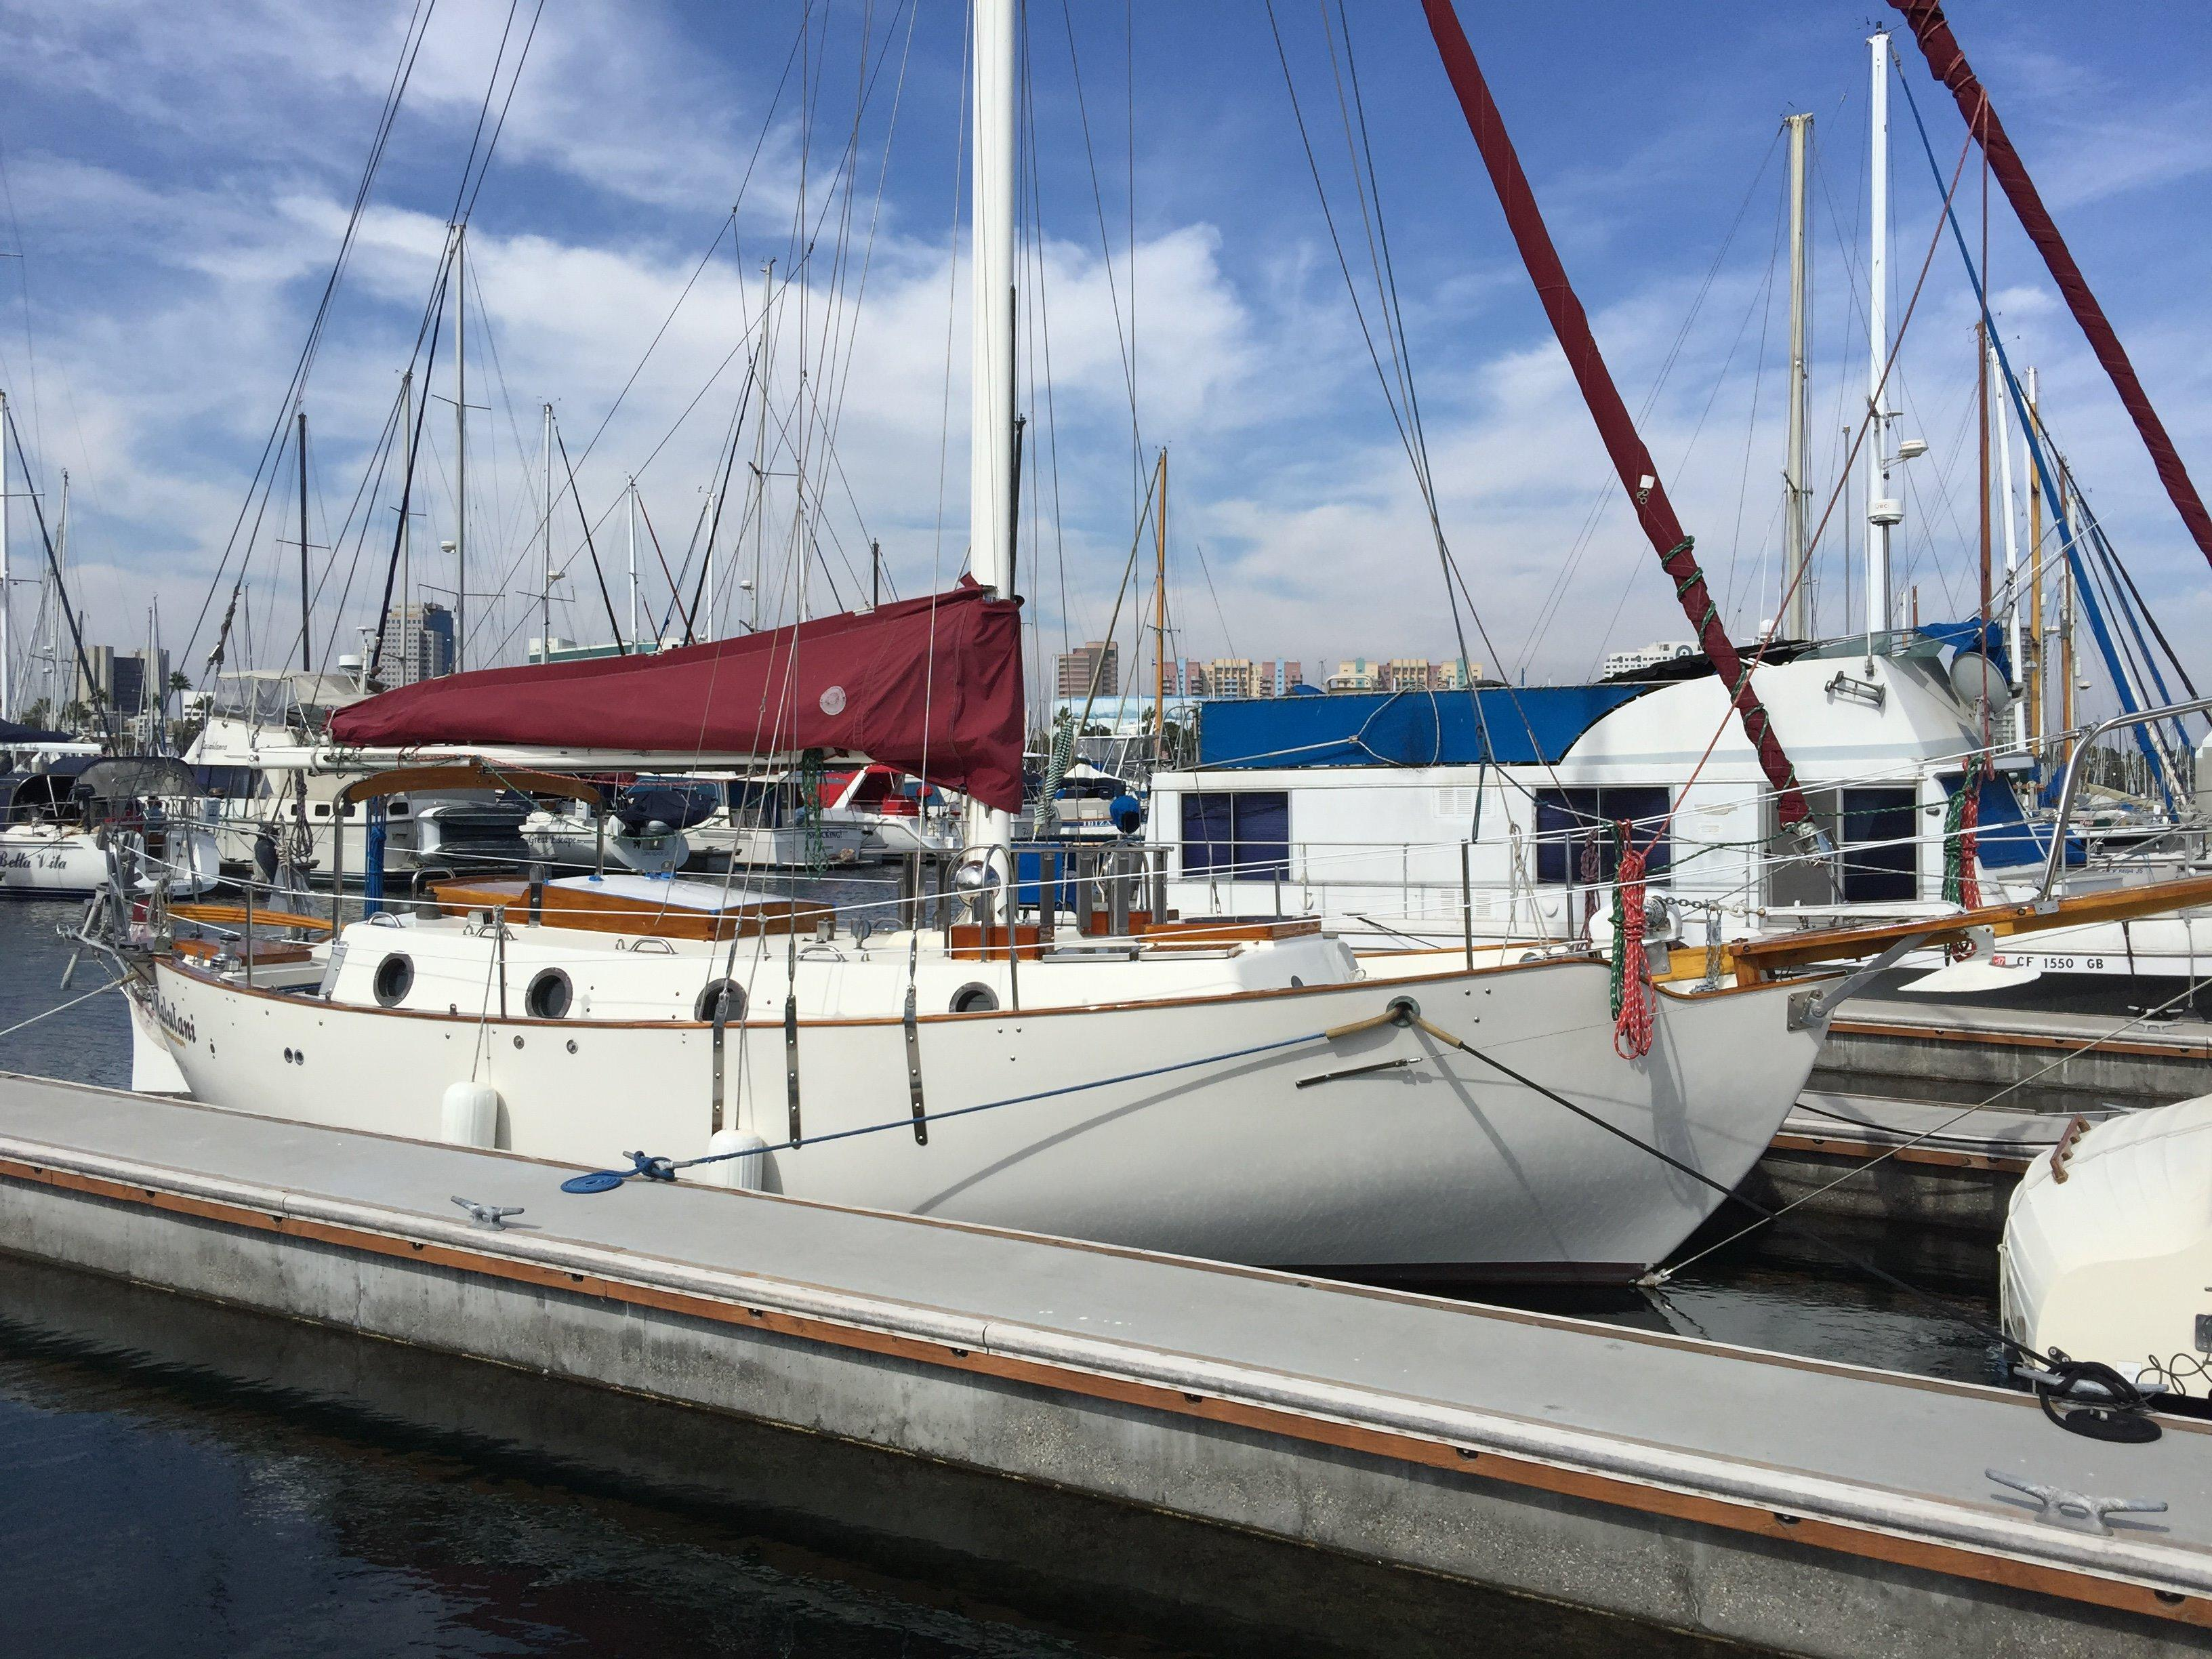 5970808_20161013162129409_1_XLARGE&w=3264&h=2448&t=1476404490000 1975 westsail 32 cutter sail boat for sale www yachtworld com Simple Boat Wiring Diagram at soozxer.org